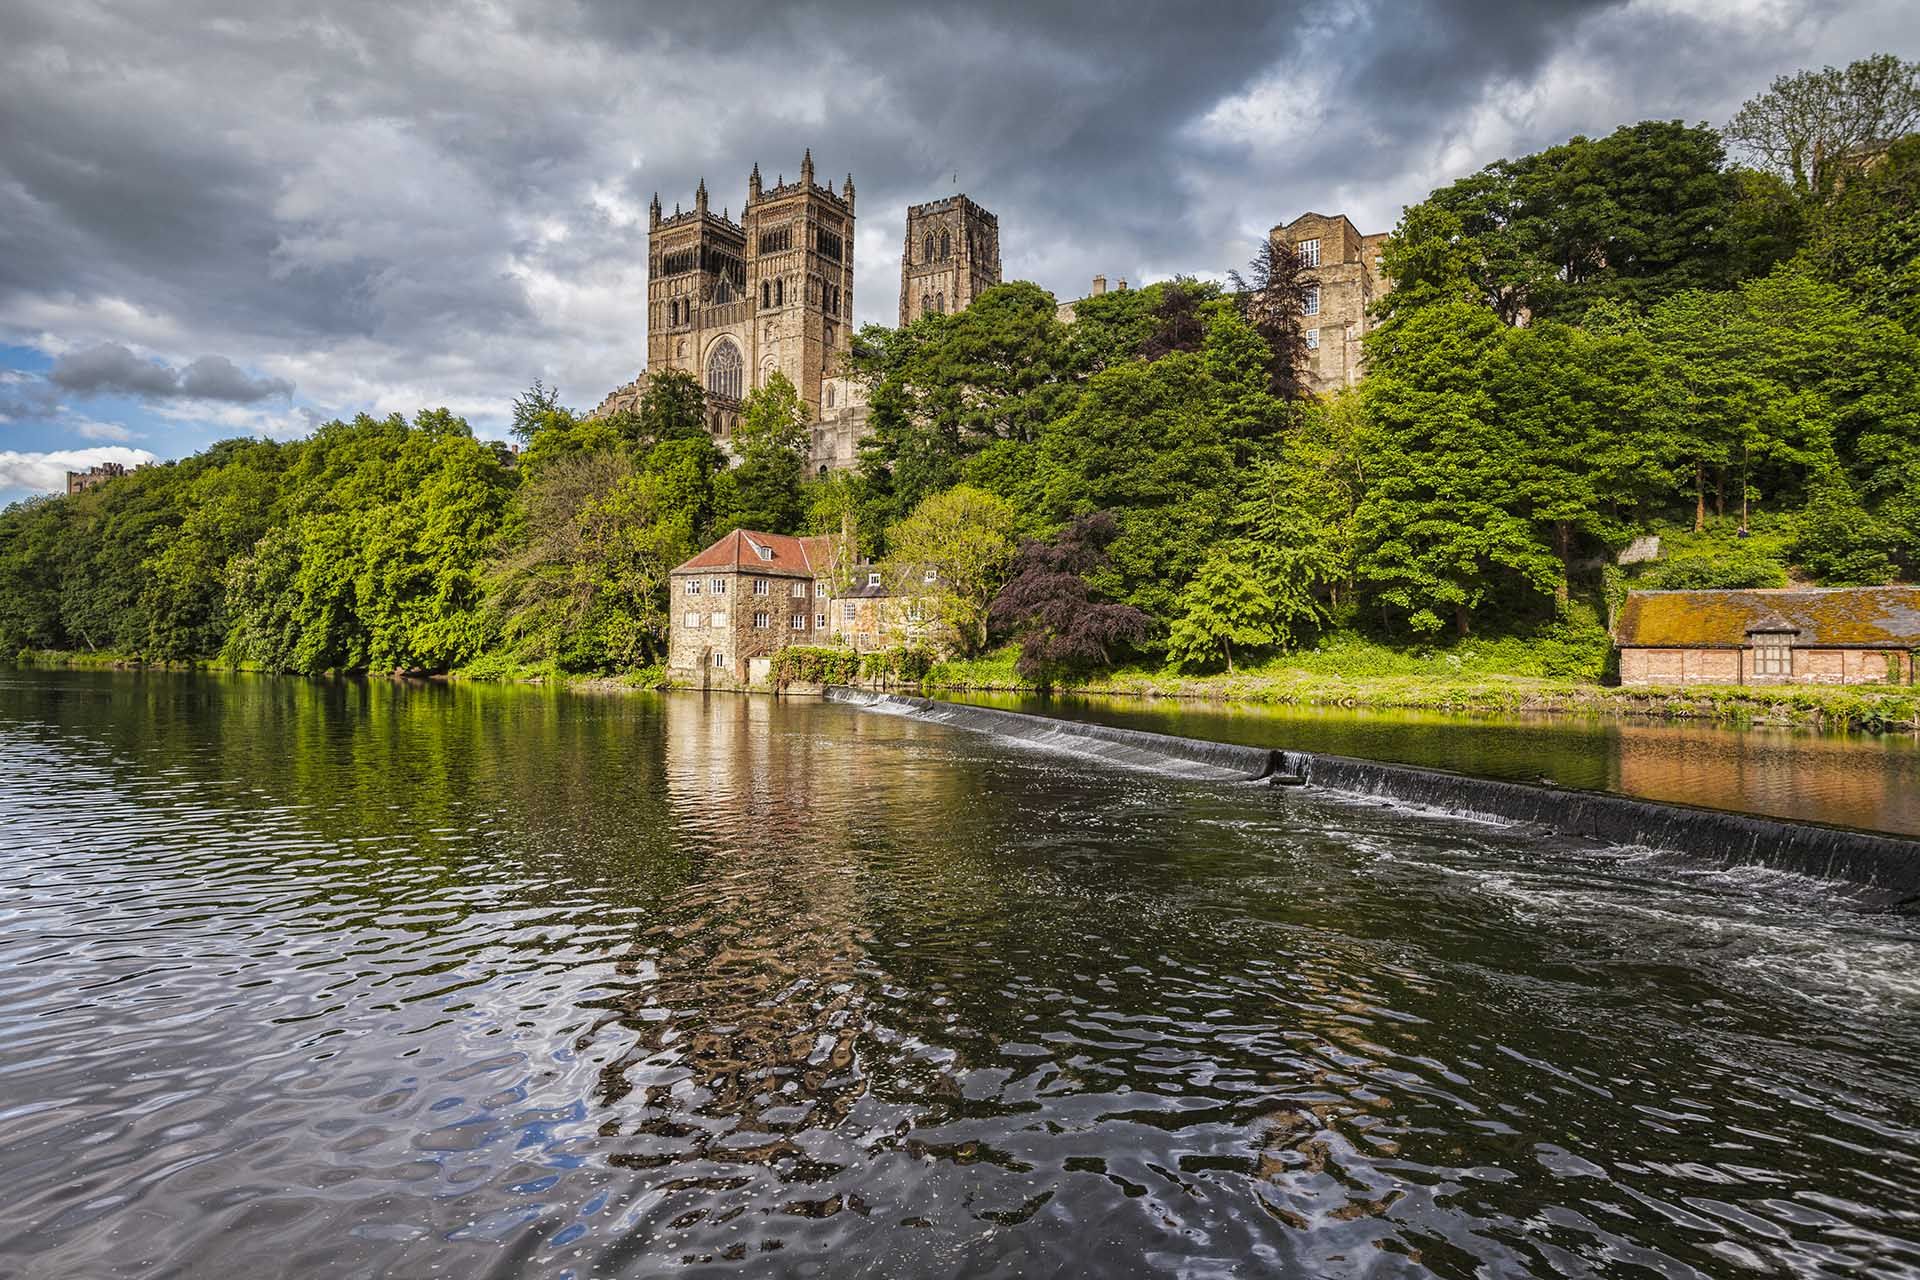 Durham Cathedral and the River Wear under a dramatic stormy sky.